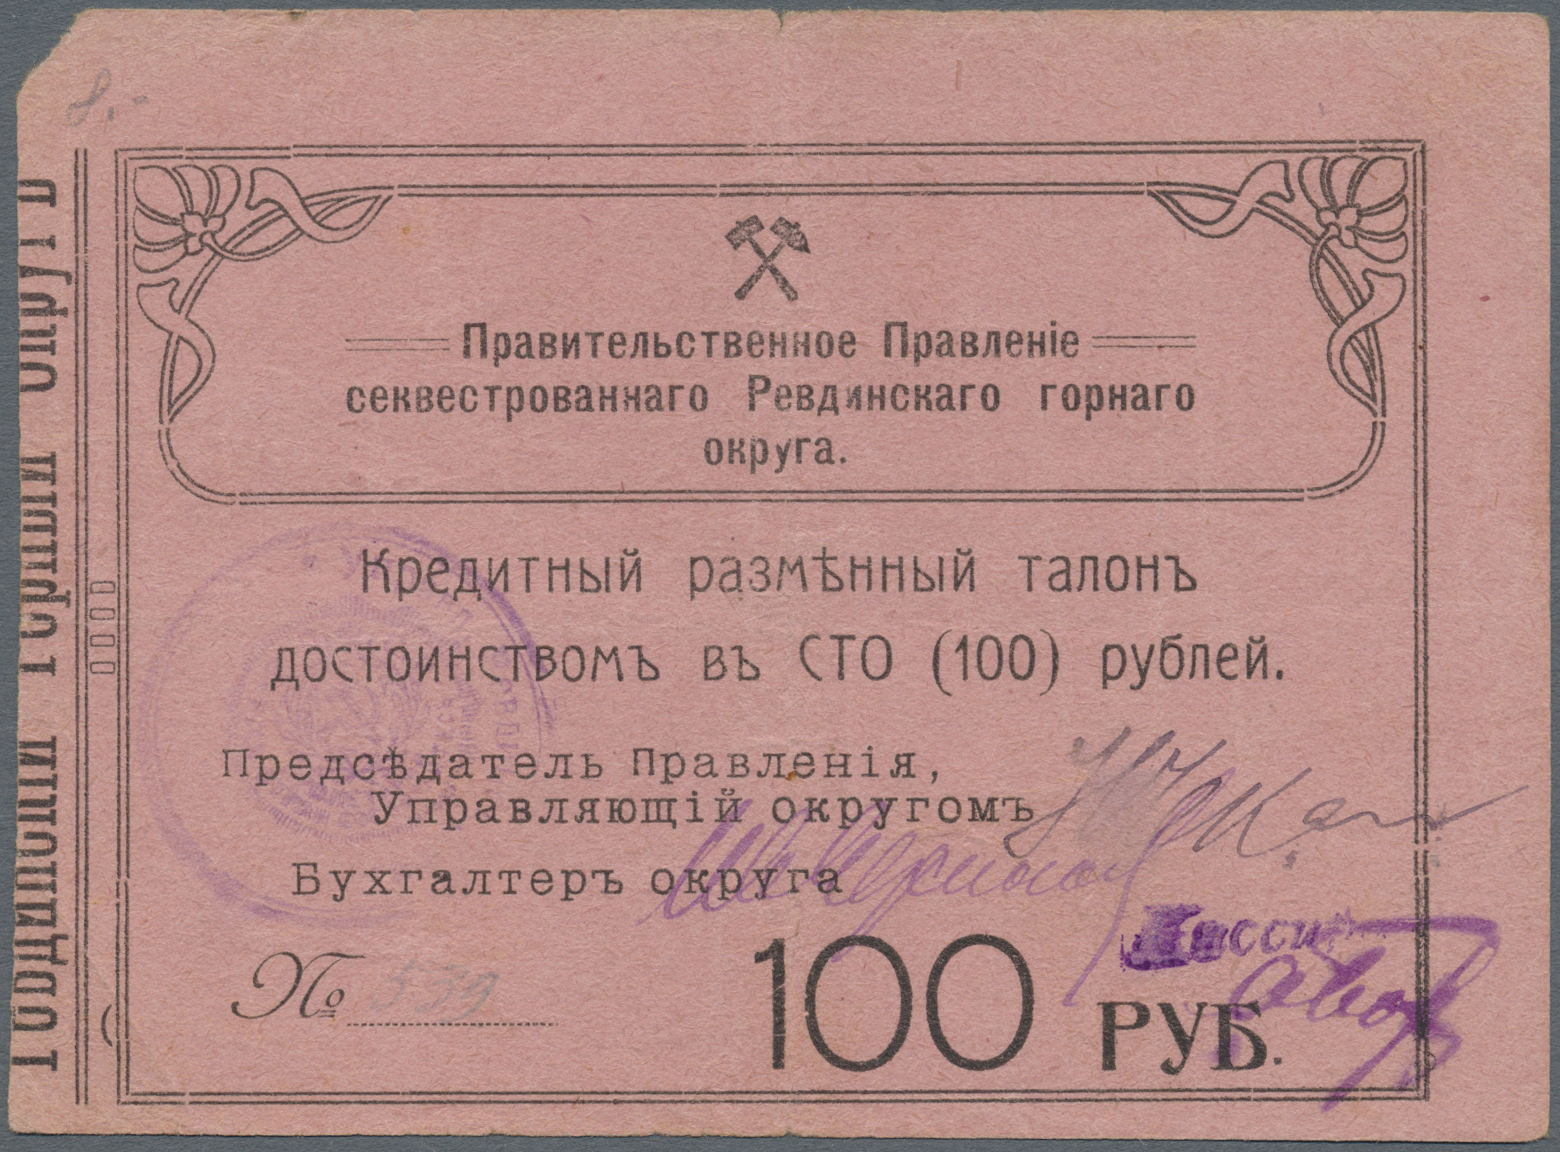 Lot 00781 - Russia / Russland | Banknoten  -  Auktionshaus Christoph Gärtner GmbH & Co. KG Sale #48 The Banknotes